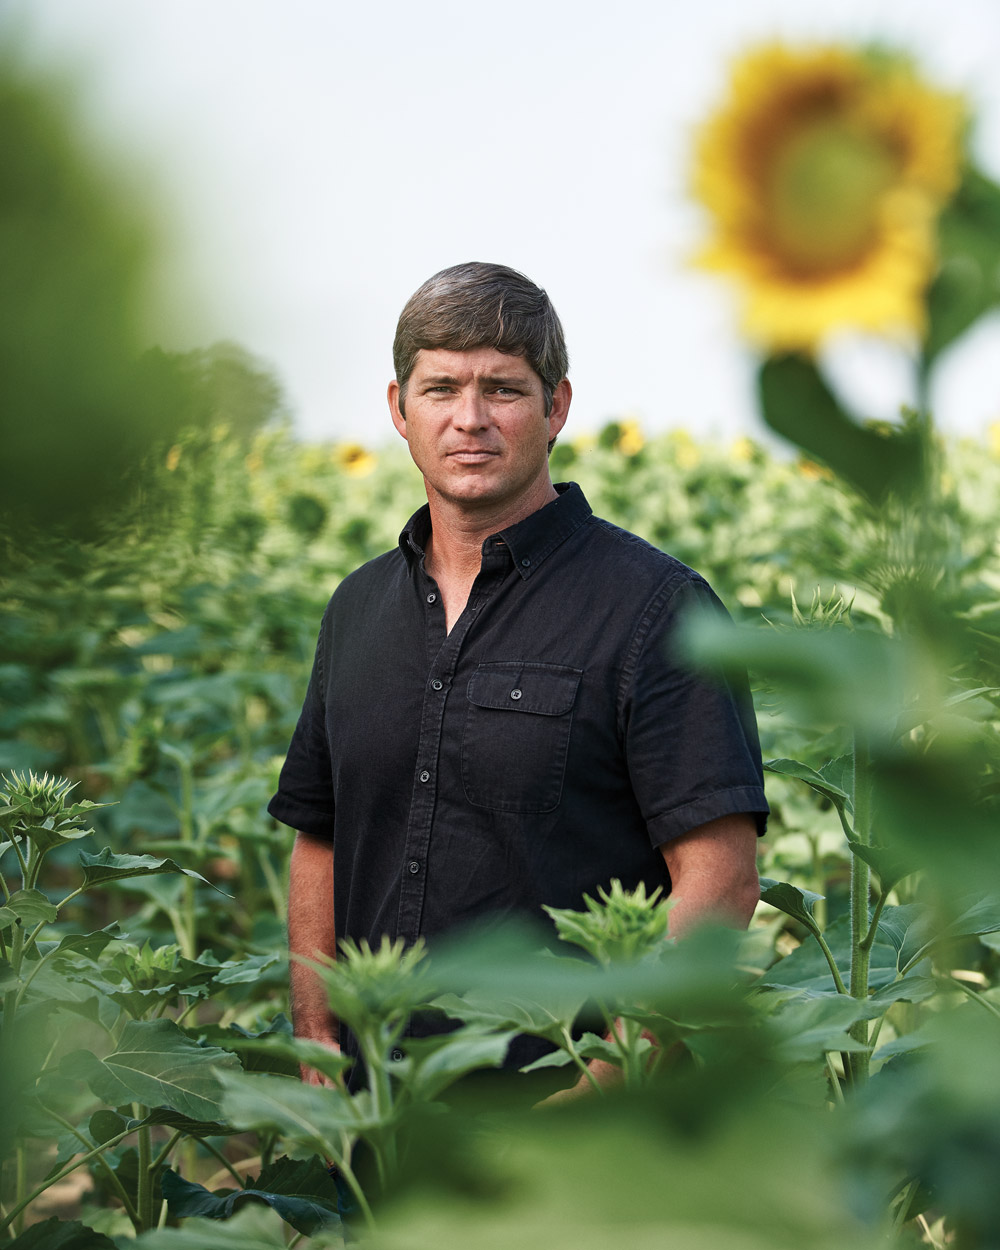 Clay Oliver standing in a field of flowers